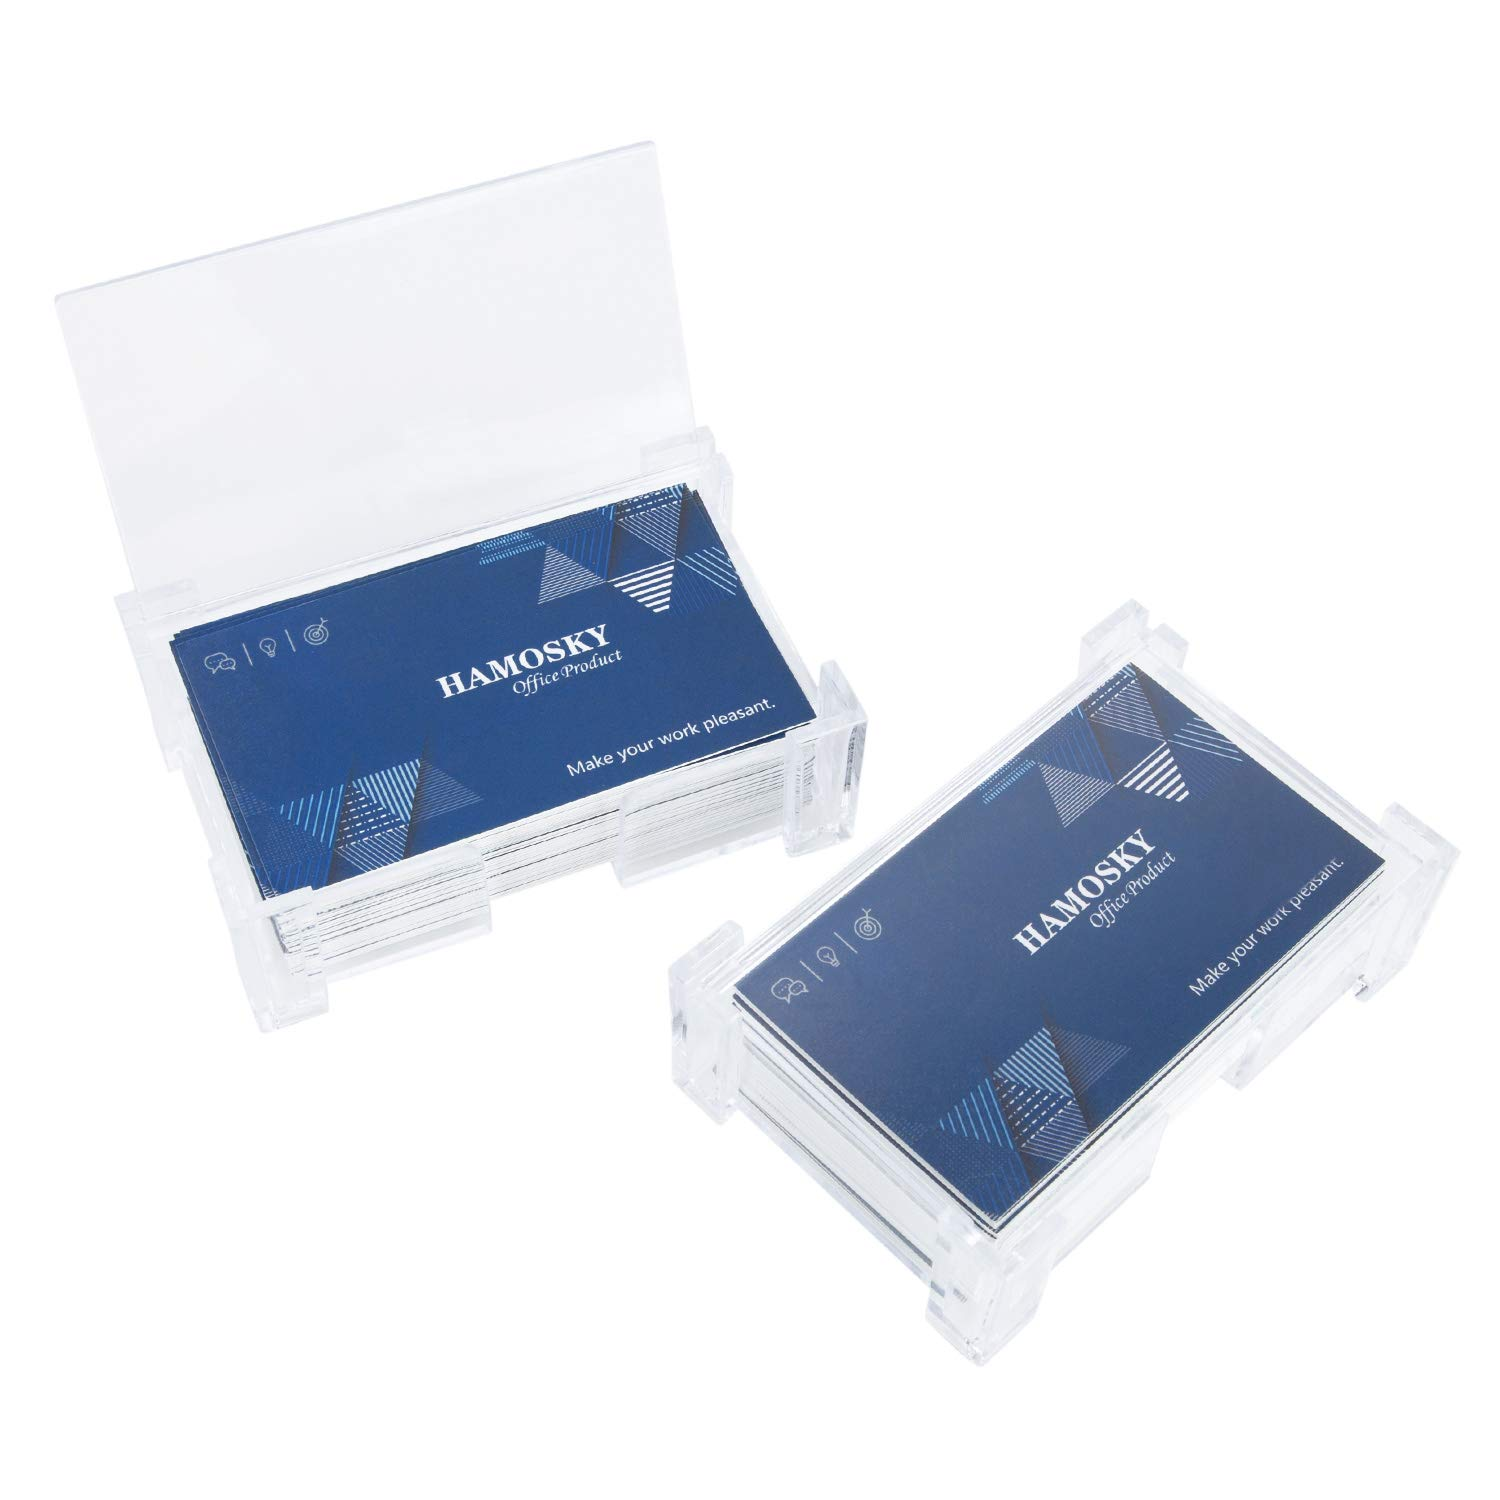 Hamosky Acrylic Clear Business Card Holder, Plastic Business Card Stand for Men & Women, Portable Business Name Card Case Box,White,2 Pack